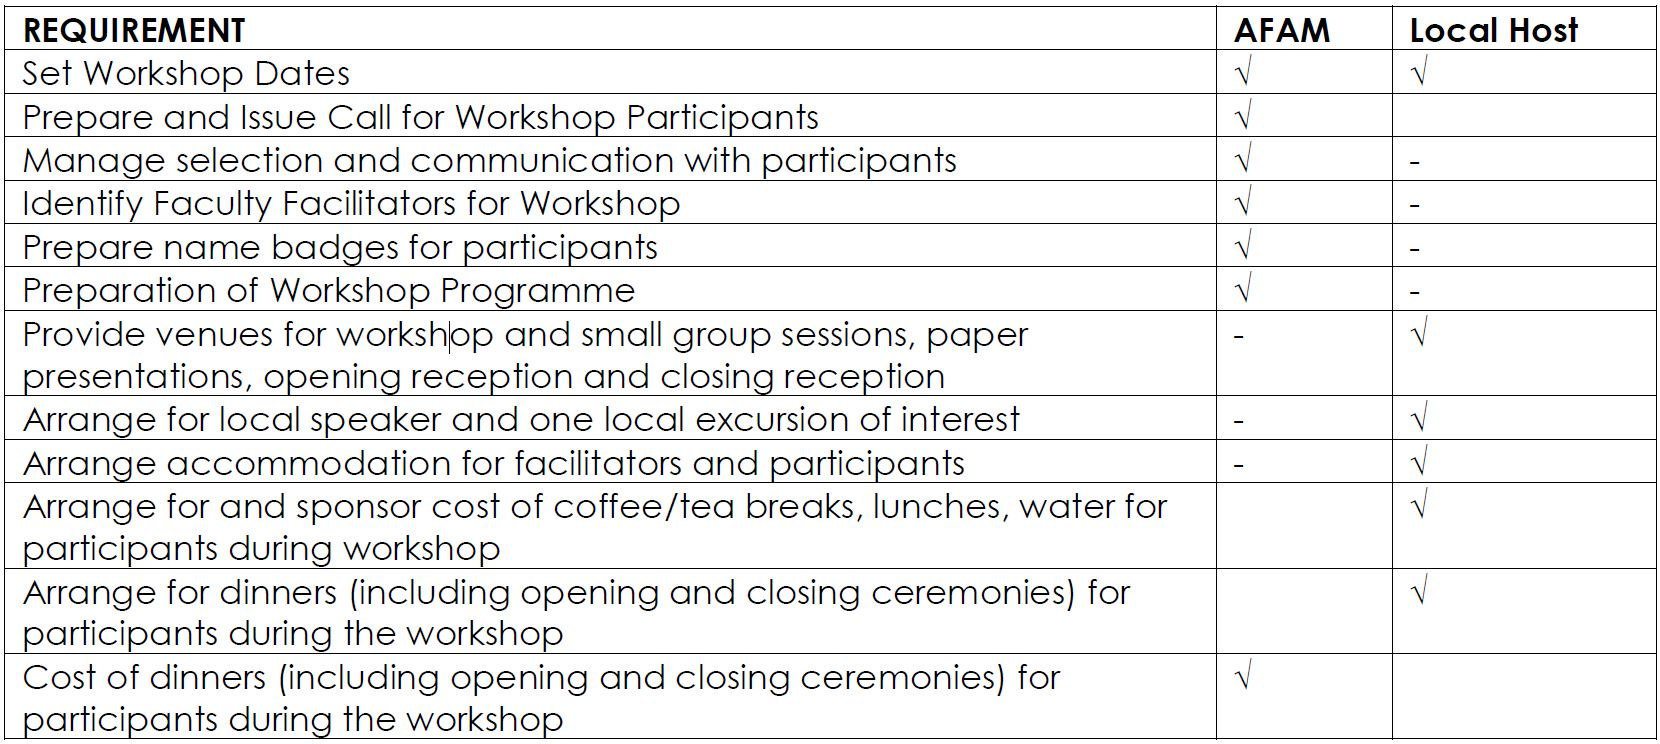 Minimum Requirements to Host the 2019 Africa Faculty Development Workshop AFAM and Host Responsibilities